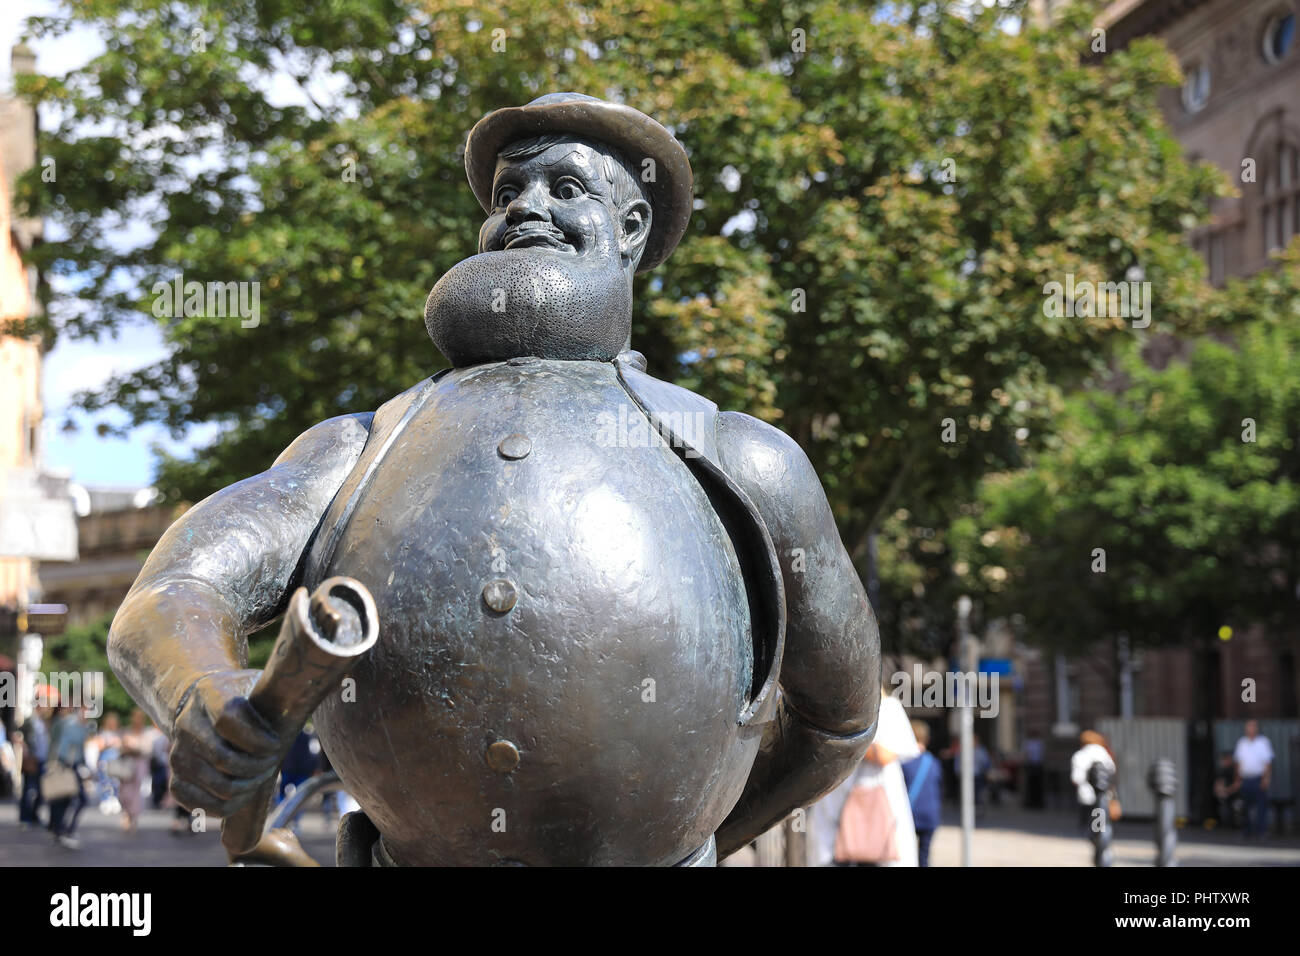 Statue of Desperate Dan, the wild west character from the Dandy, in Dundee where his publishers, D.C. Thomson are based, in Scotland, UK - Stock Image